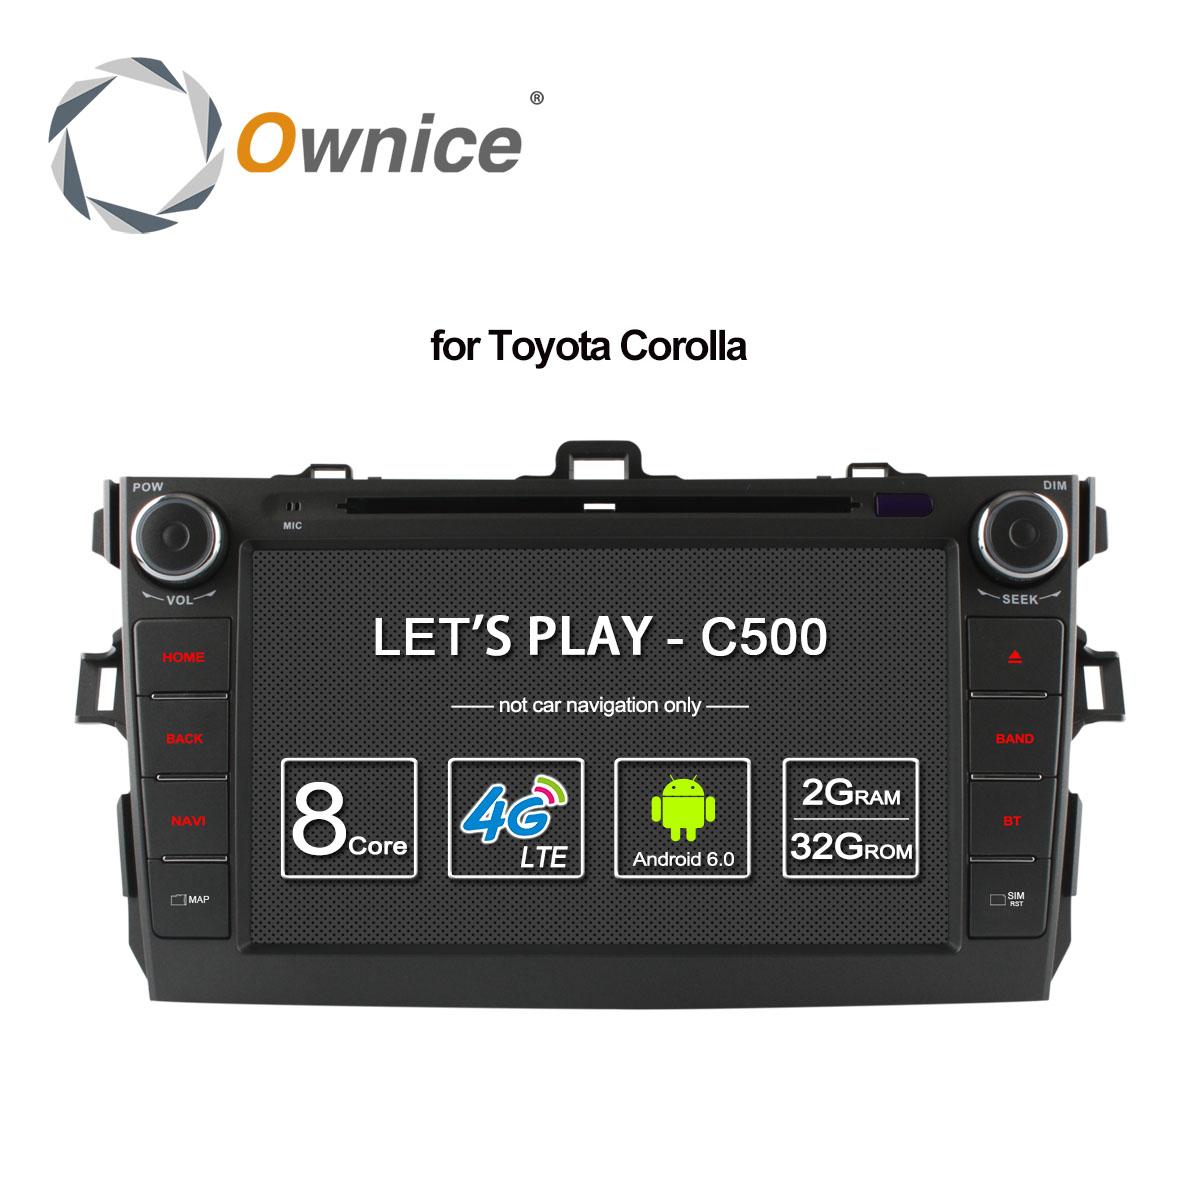 Ownice C500 Android 6.0 Octa 8 Core 2G RAM car dvd player for Toyota corolla 2007 - 2011 in dash 2 din gps navi 4G LTE Network ownice c500 4g sim lte octa 8 core android 6 0 for kia ceed 2013 2015 car dvd player gps navi radio wifi 4g bt 2gb ram 32g rom